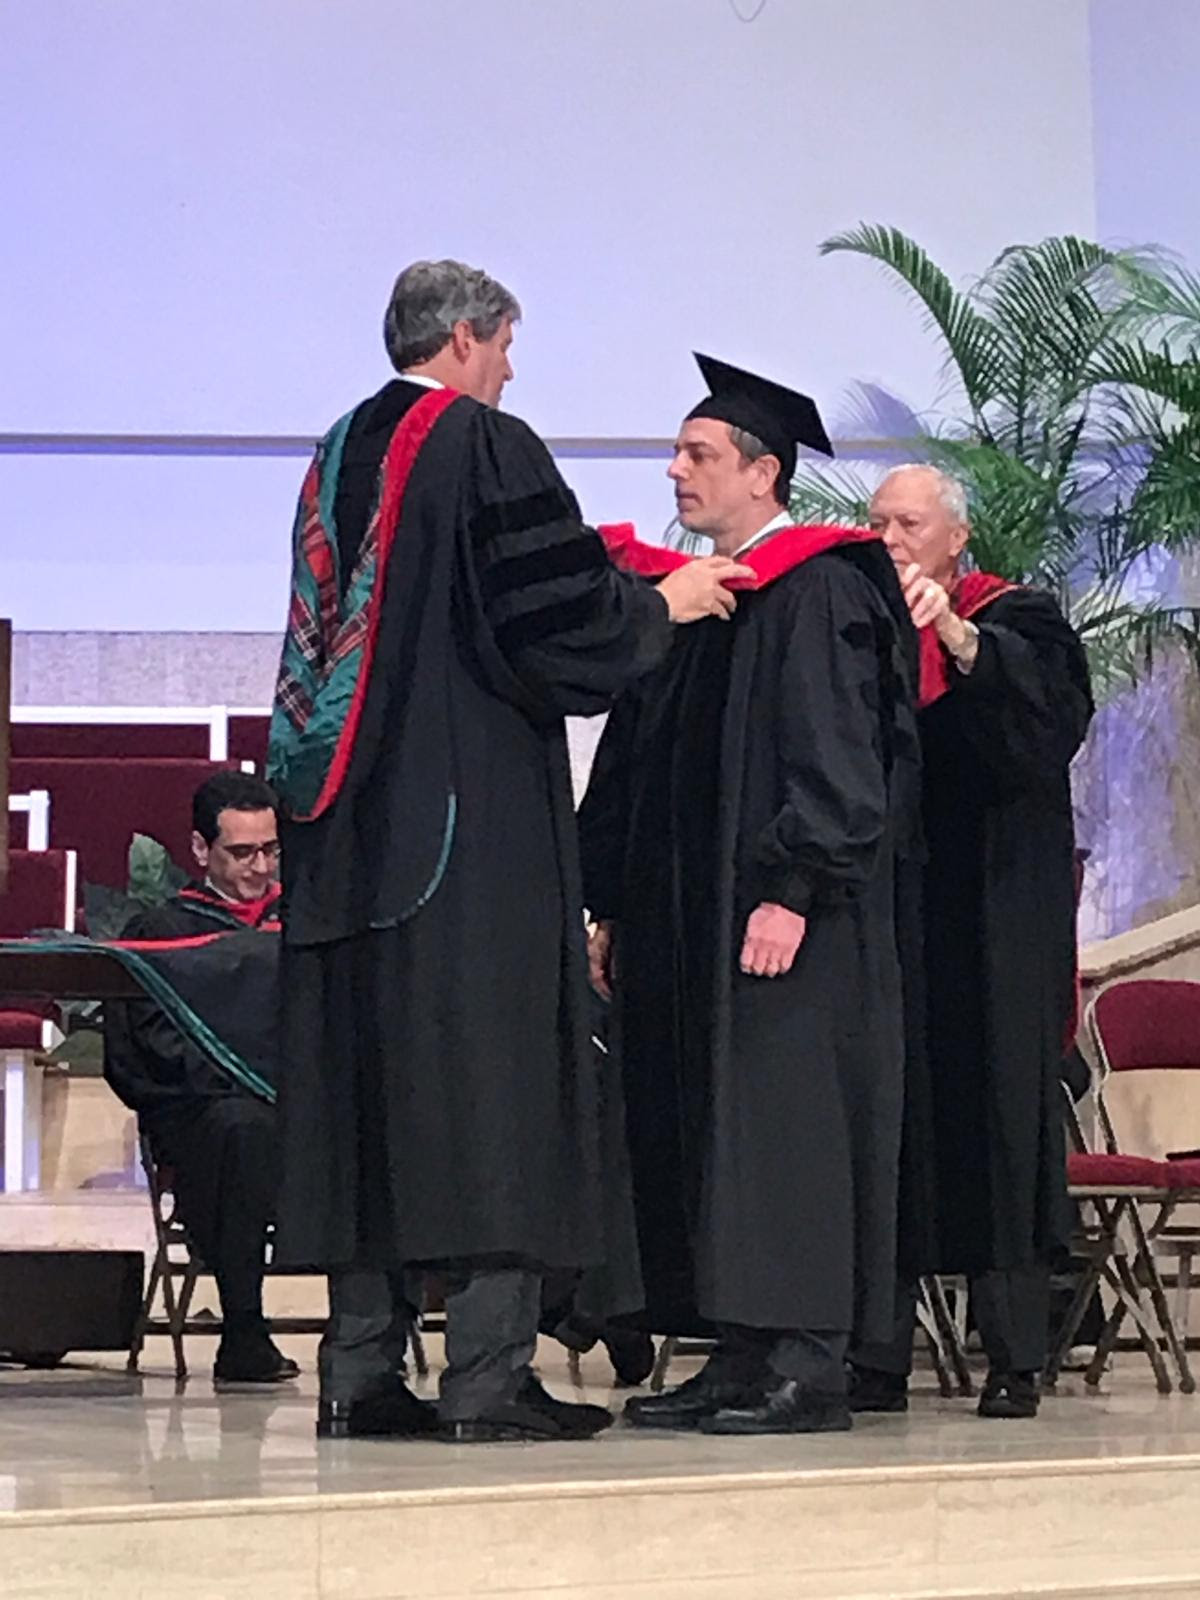 Jonathan Schuster - Jonathan Schuster who lectures in Old Testament graduated with a DMin from Knox Theological Seminary, Fort Lauderdale, Florida. Congratulations to Jonathan!